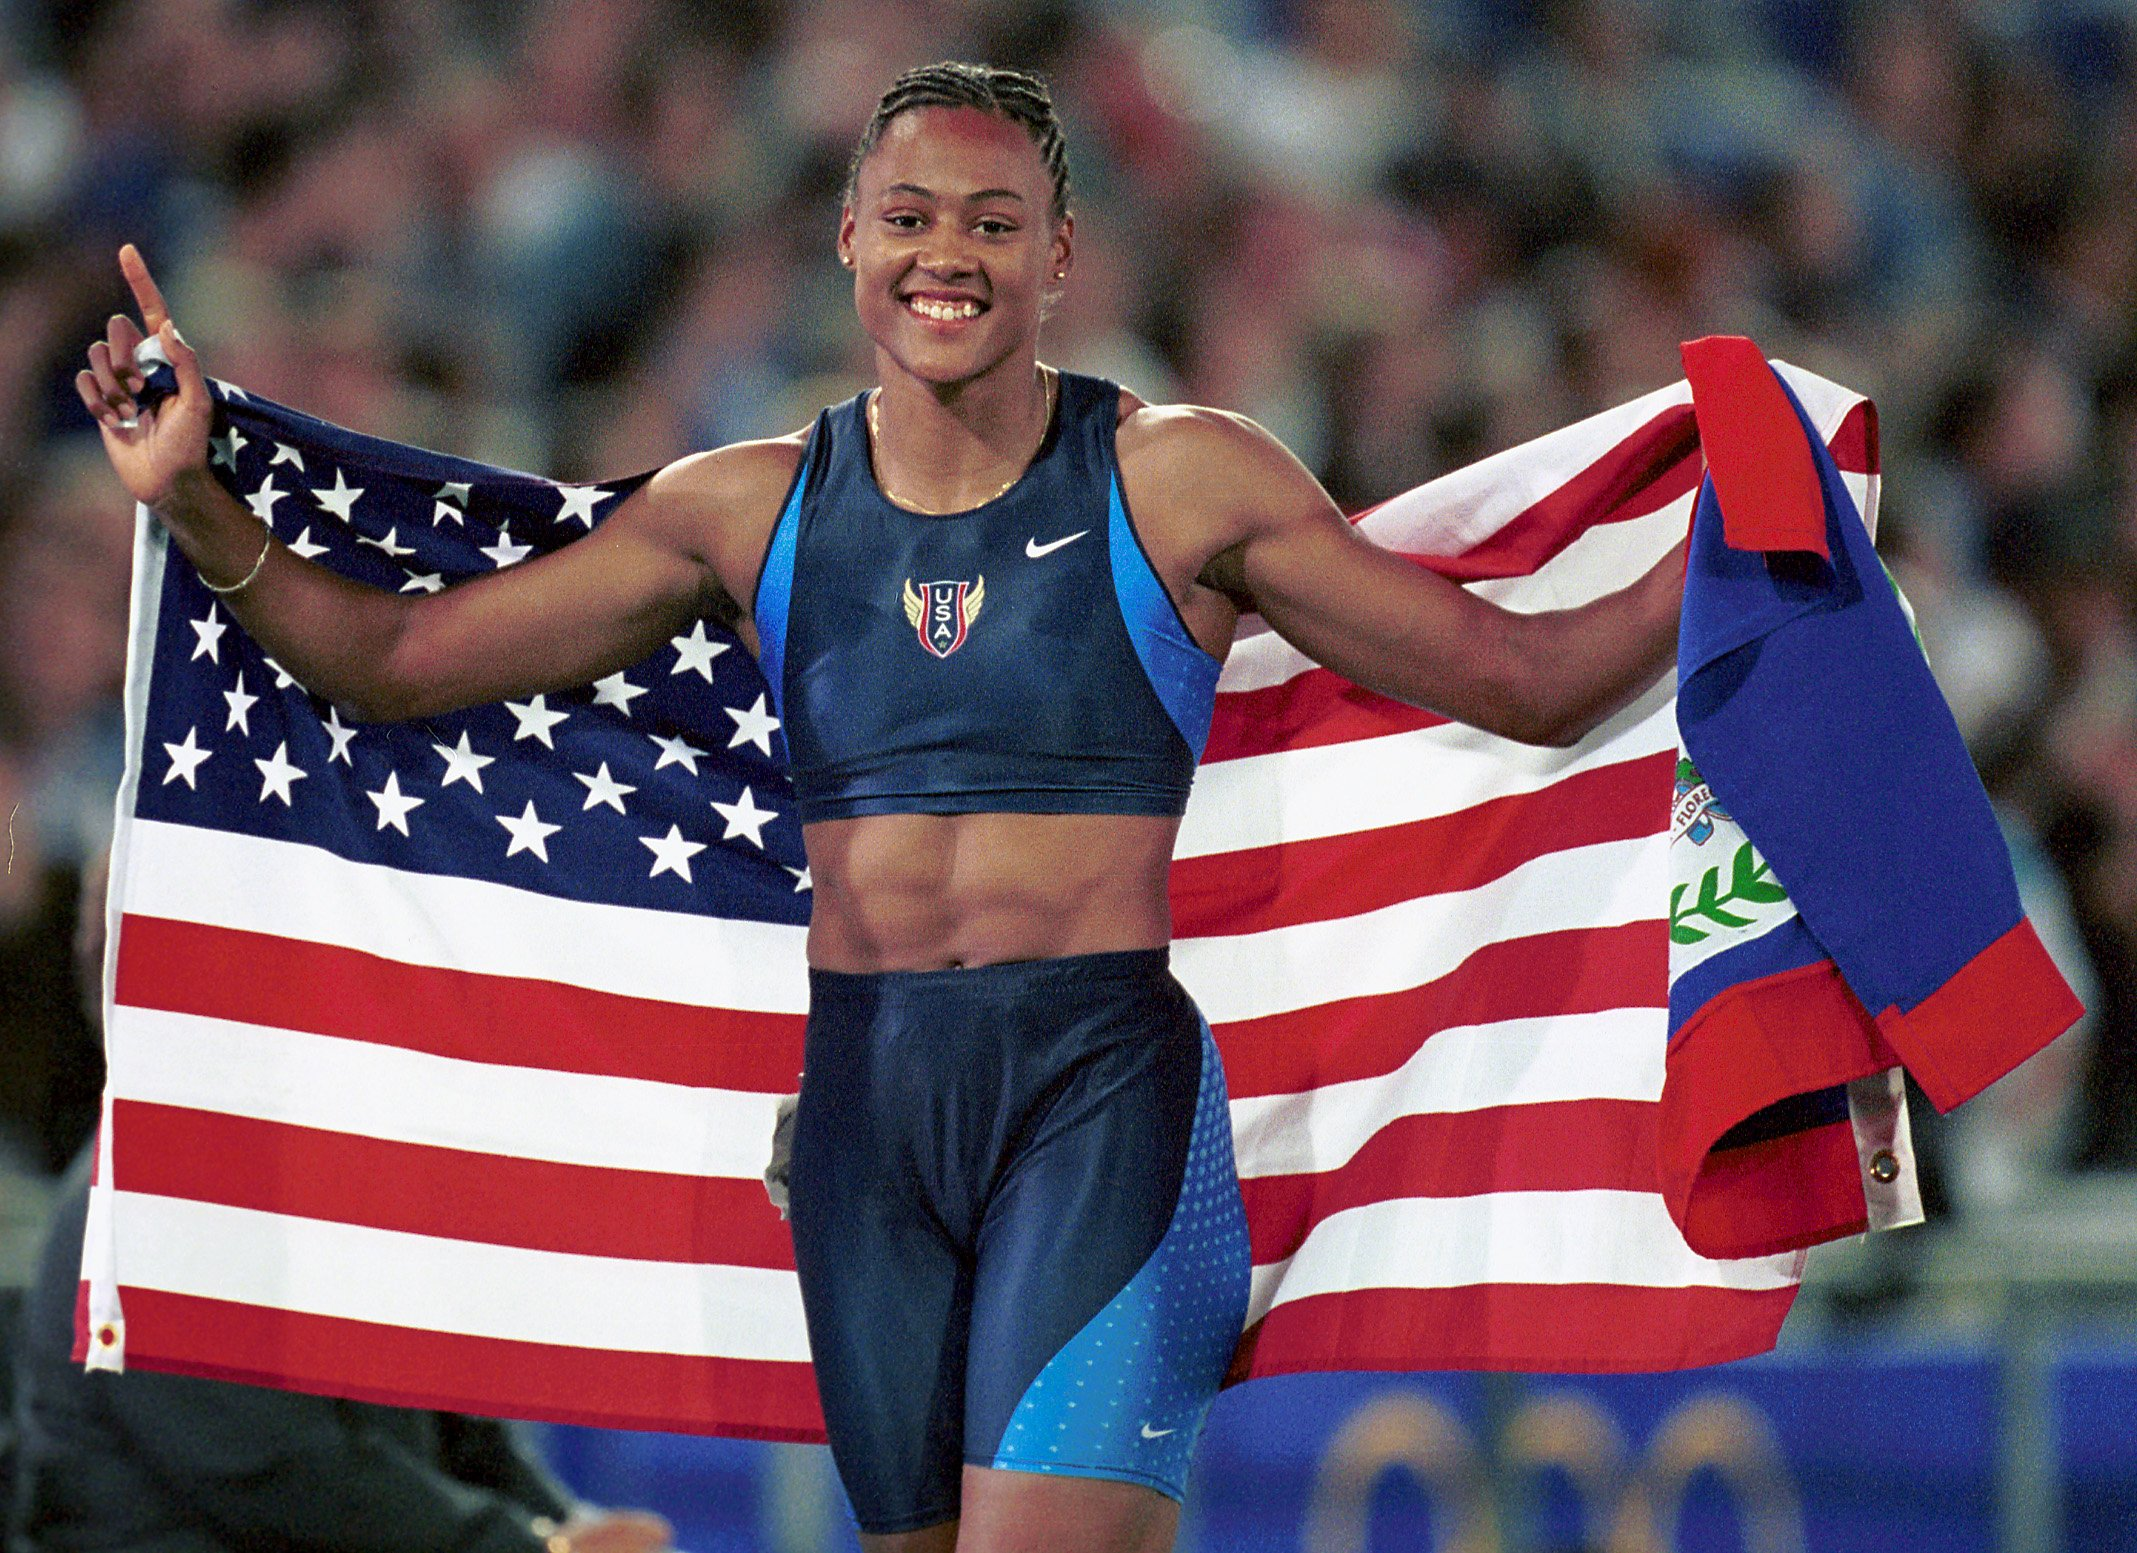 Marion Jones of the USA after winning the Womens 200M gold medal at the 2000 Olympics, September 2000 | Photo: GettyImages